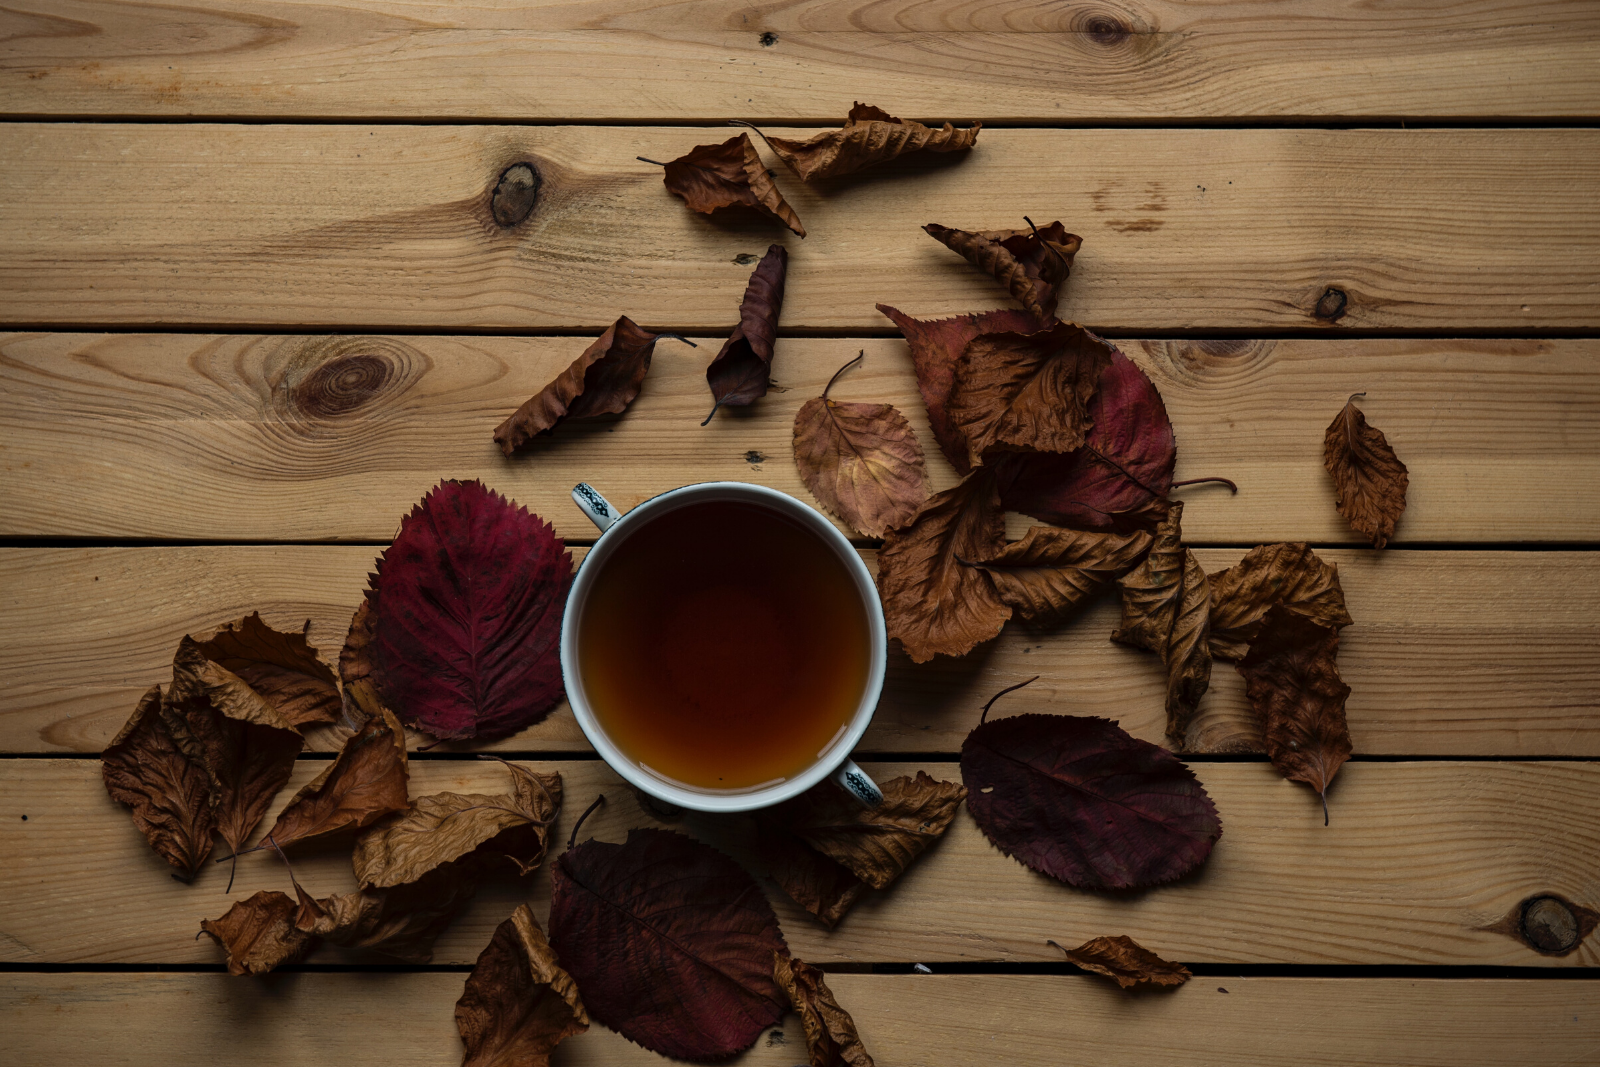 Tea and Tea Leaves | Enjoy The Perfect Cup: How To Brew Tea The Right Way